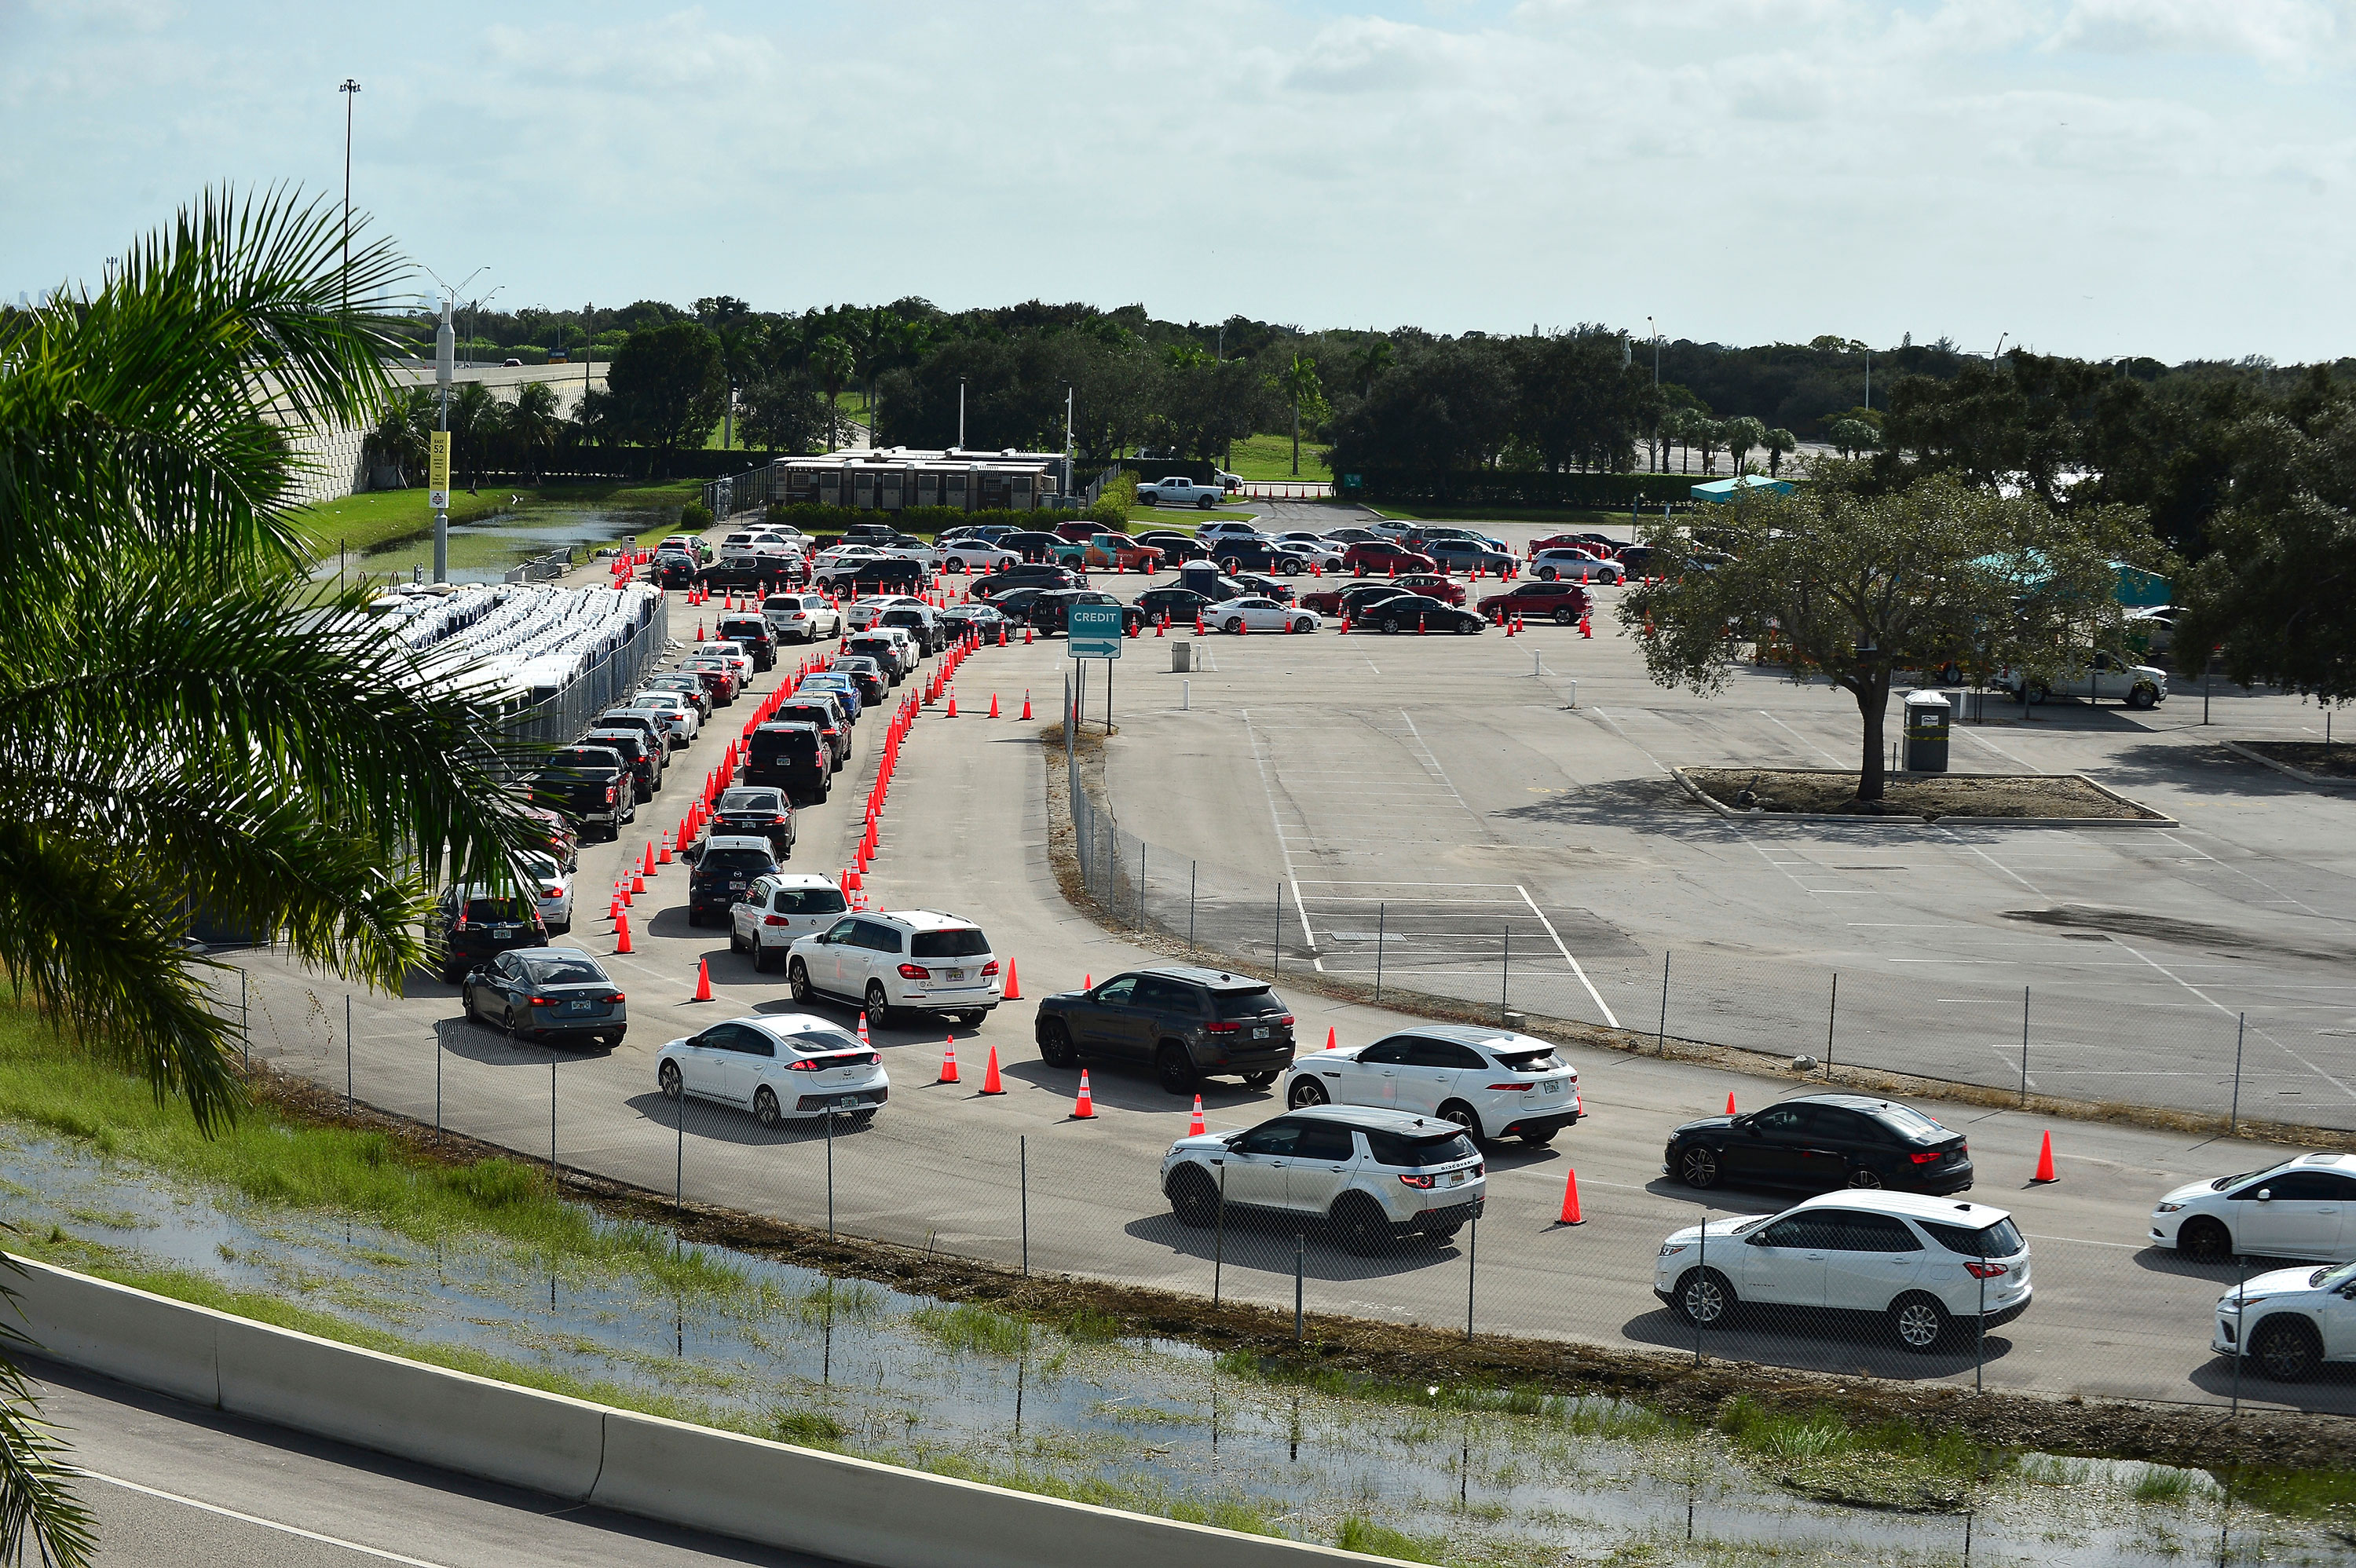 Motorists wait in line at a drive-thru Covid-19 testing site on November 3 in Miami Gardens, Florida.